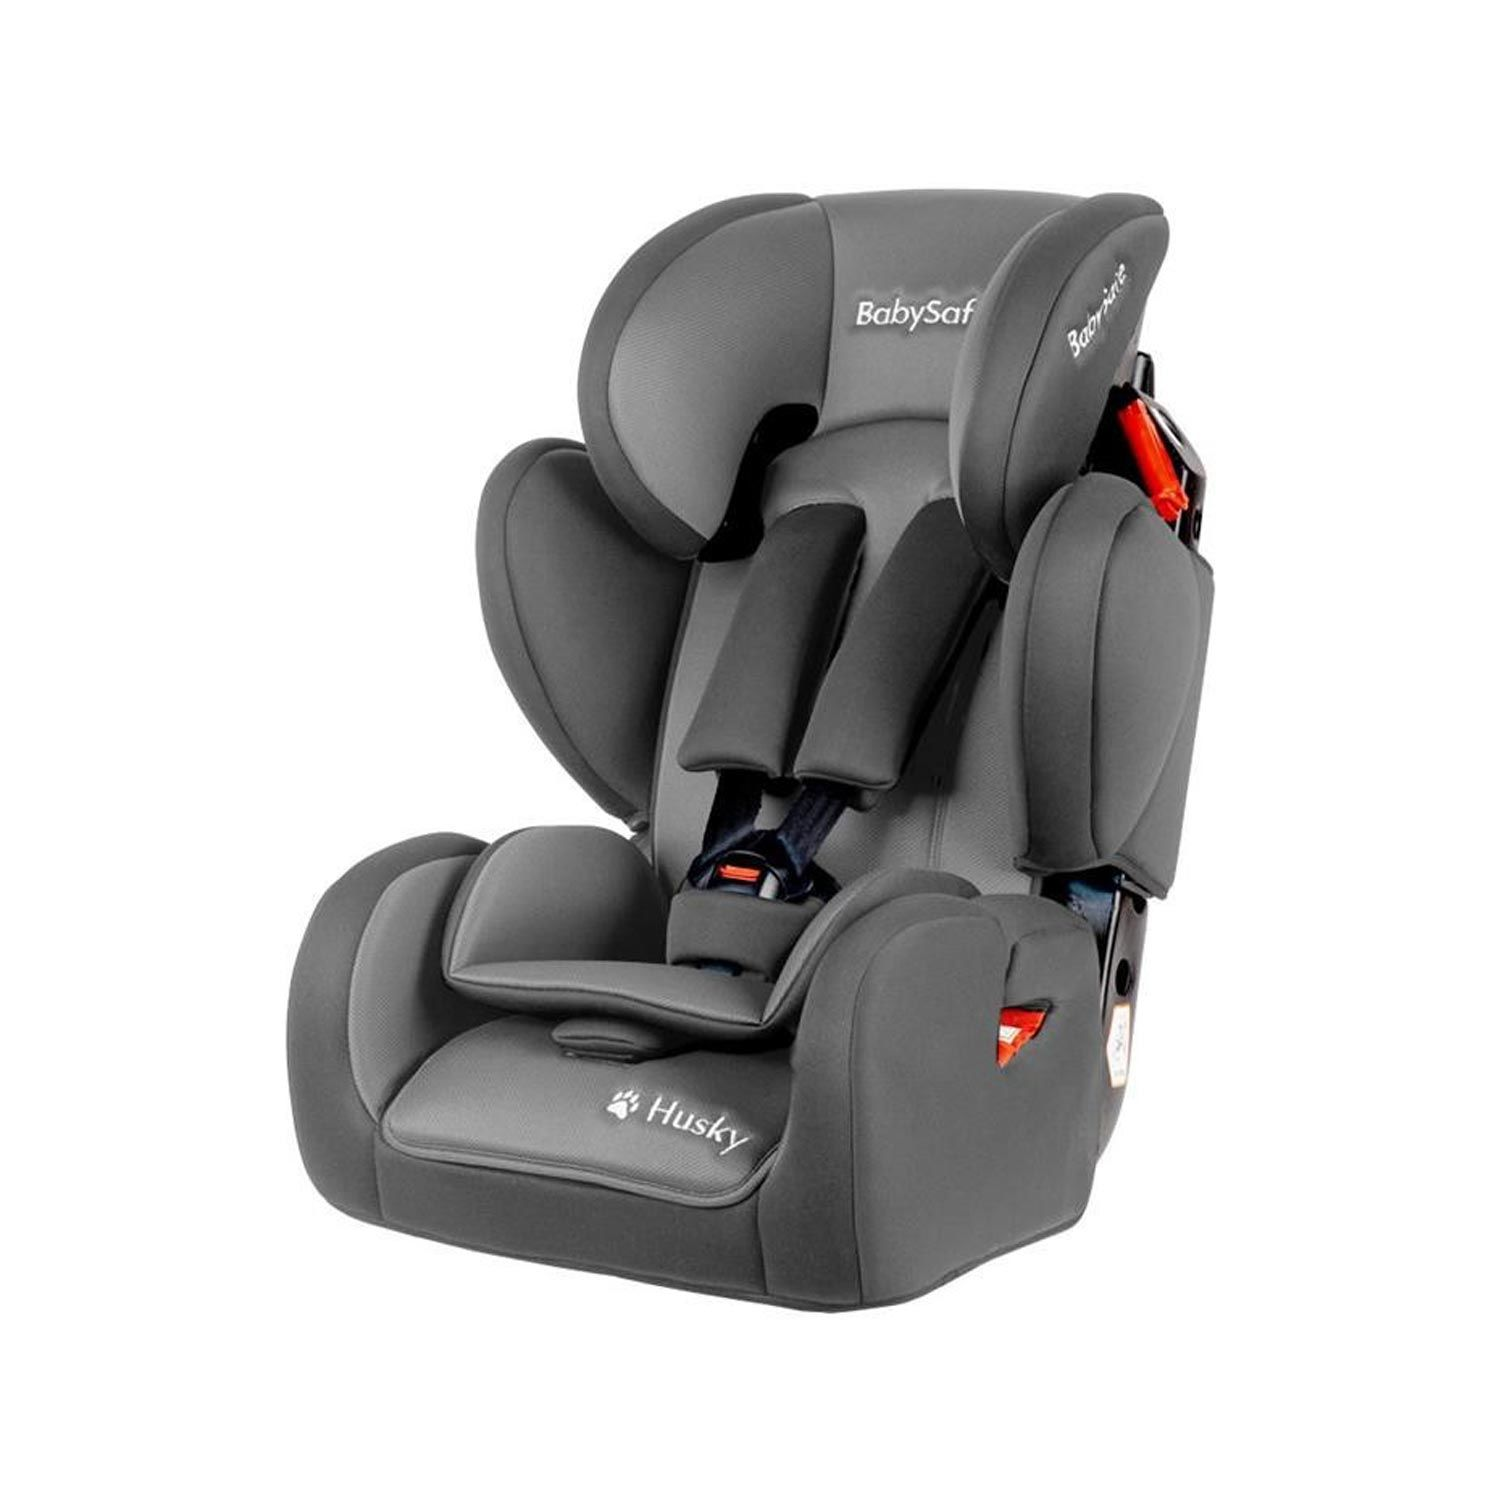 Babysafe Husky New grey Child Seat (9